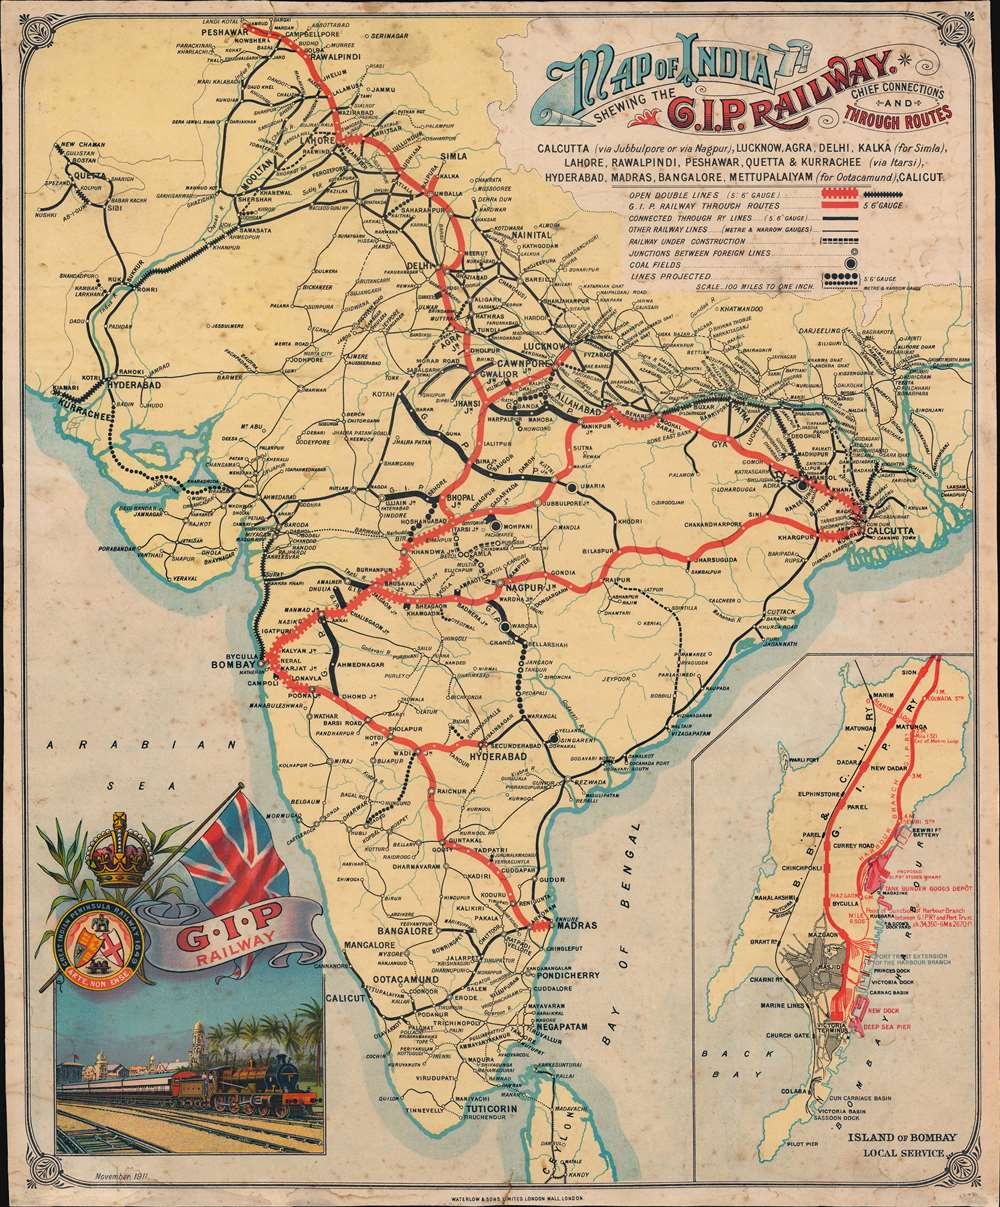 1711 Waterlow / GIP Railway Map of India w/ Bombay